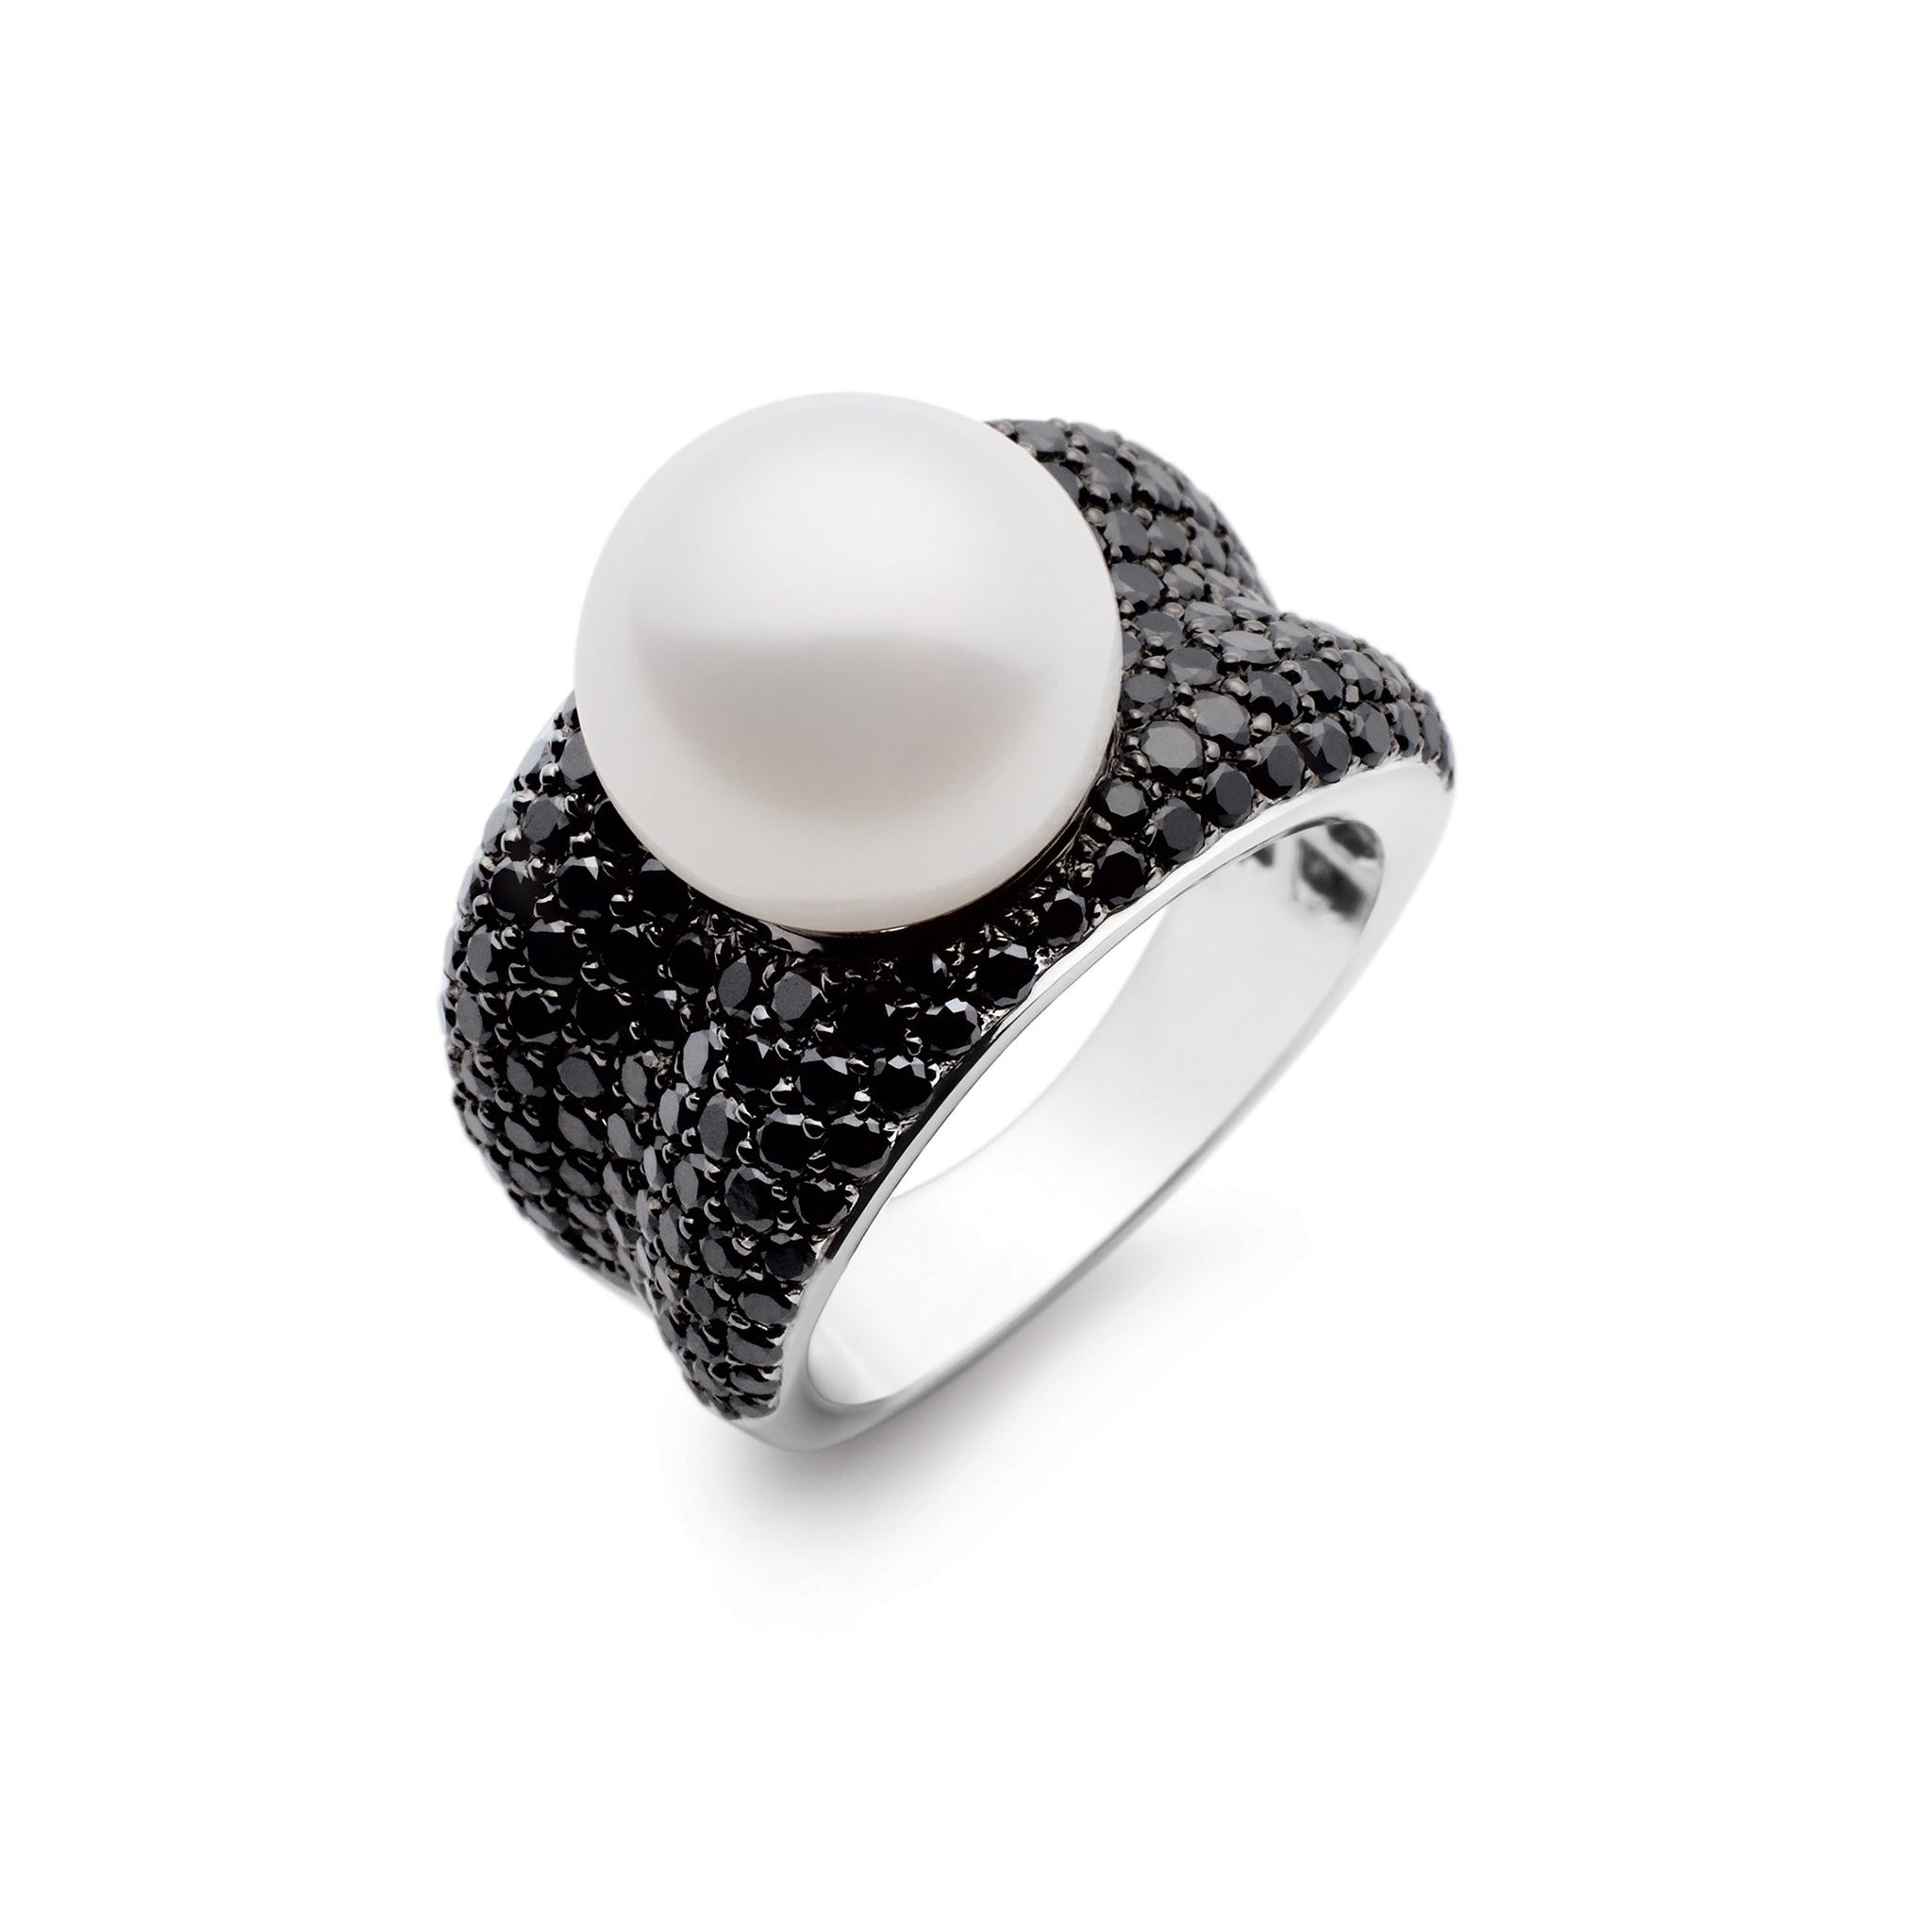 Kailis Jewellery - Adored Ring - Black Diamonds